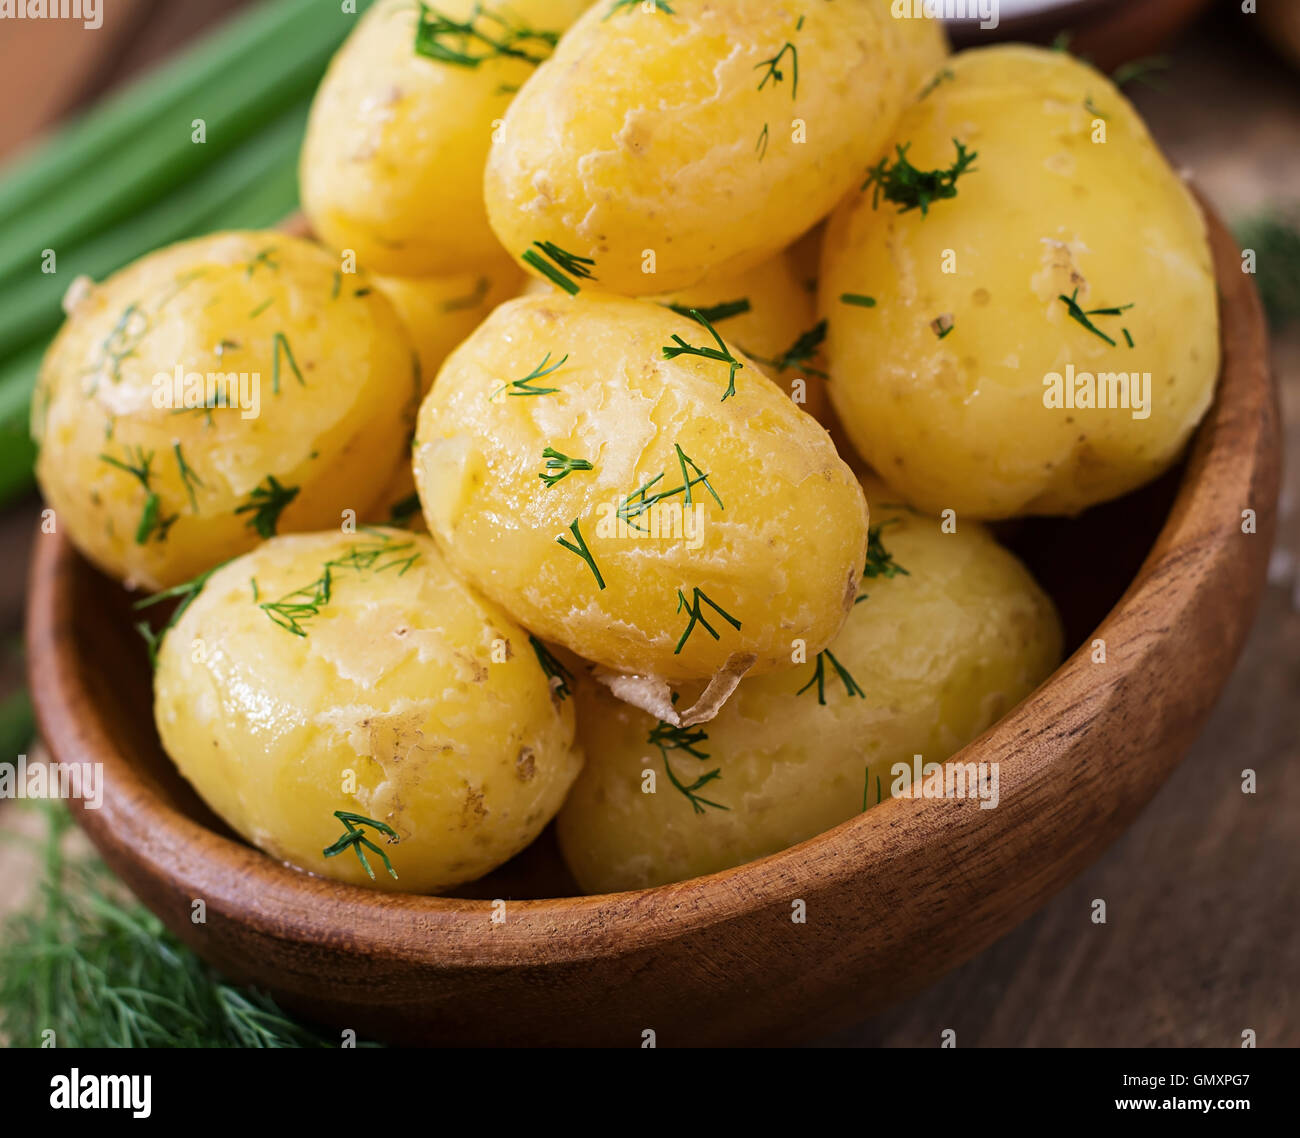 Boiled new potatoes seasoned with dill and butter - Stock Image